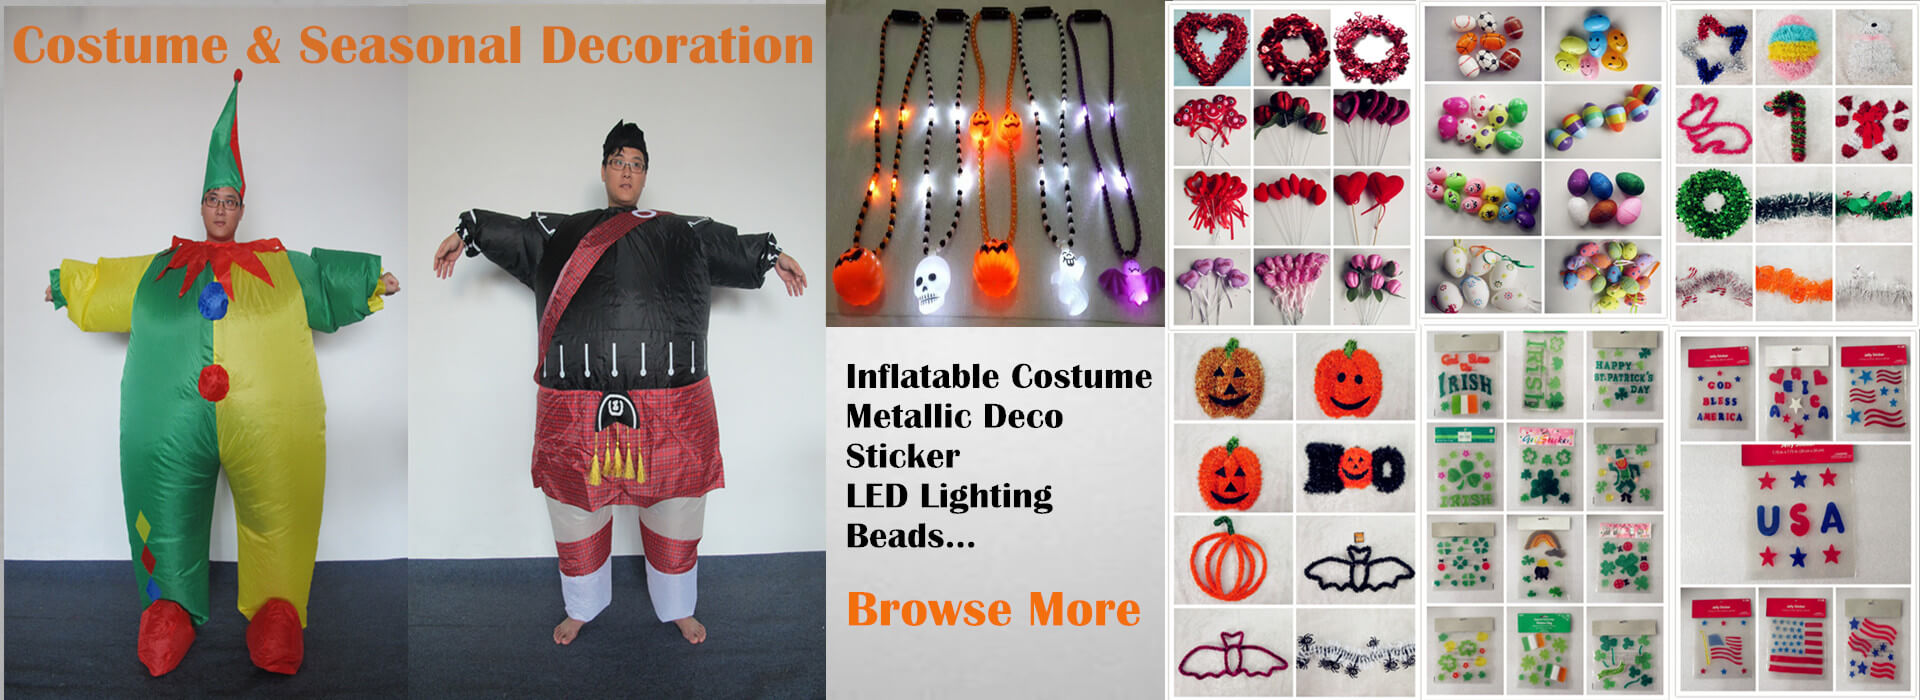 Costume and Seasonal Decoration